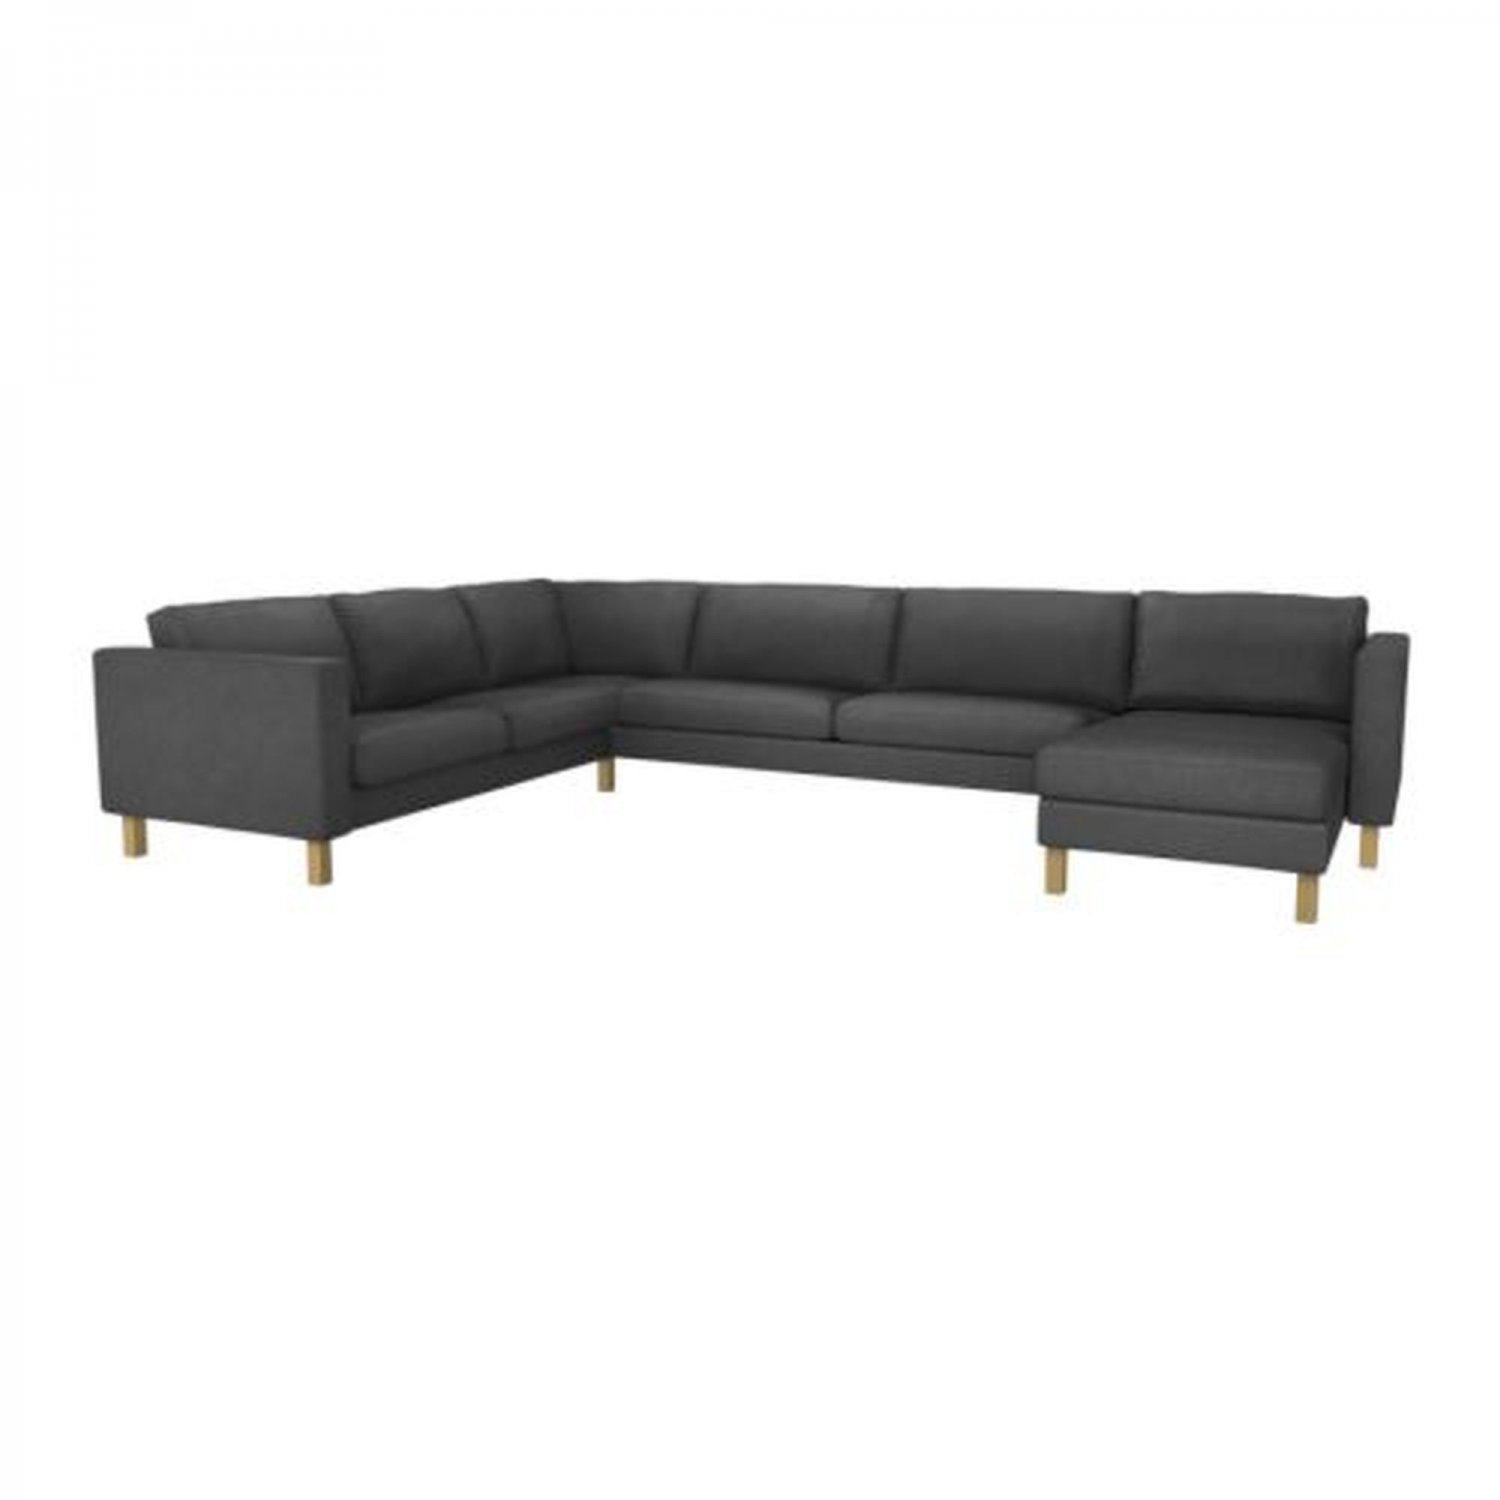 Ikea karlstad corner sofa with chaise slipcover cover sivik dark gray 2 3 3 2 grey w add on Ikea karlstad sofa